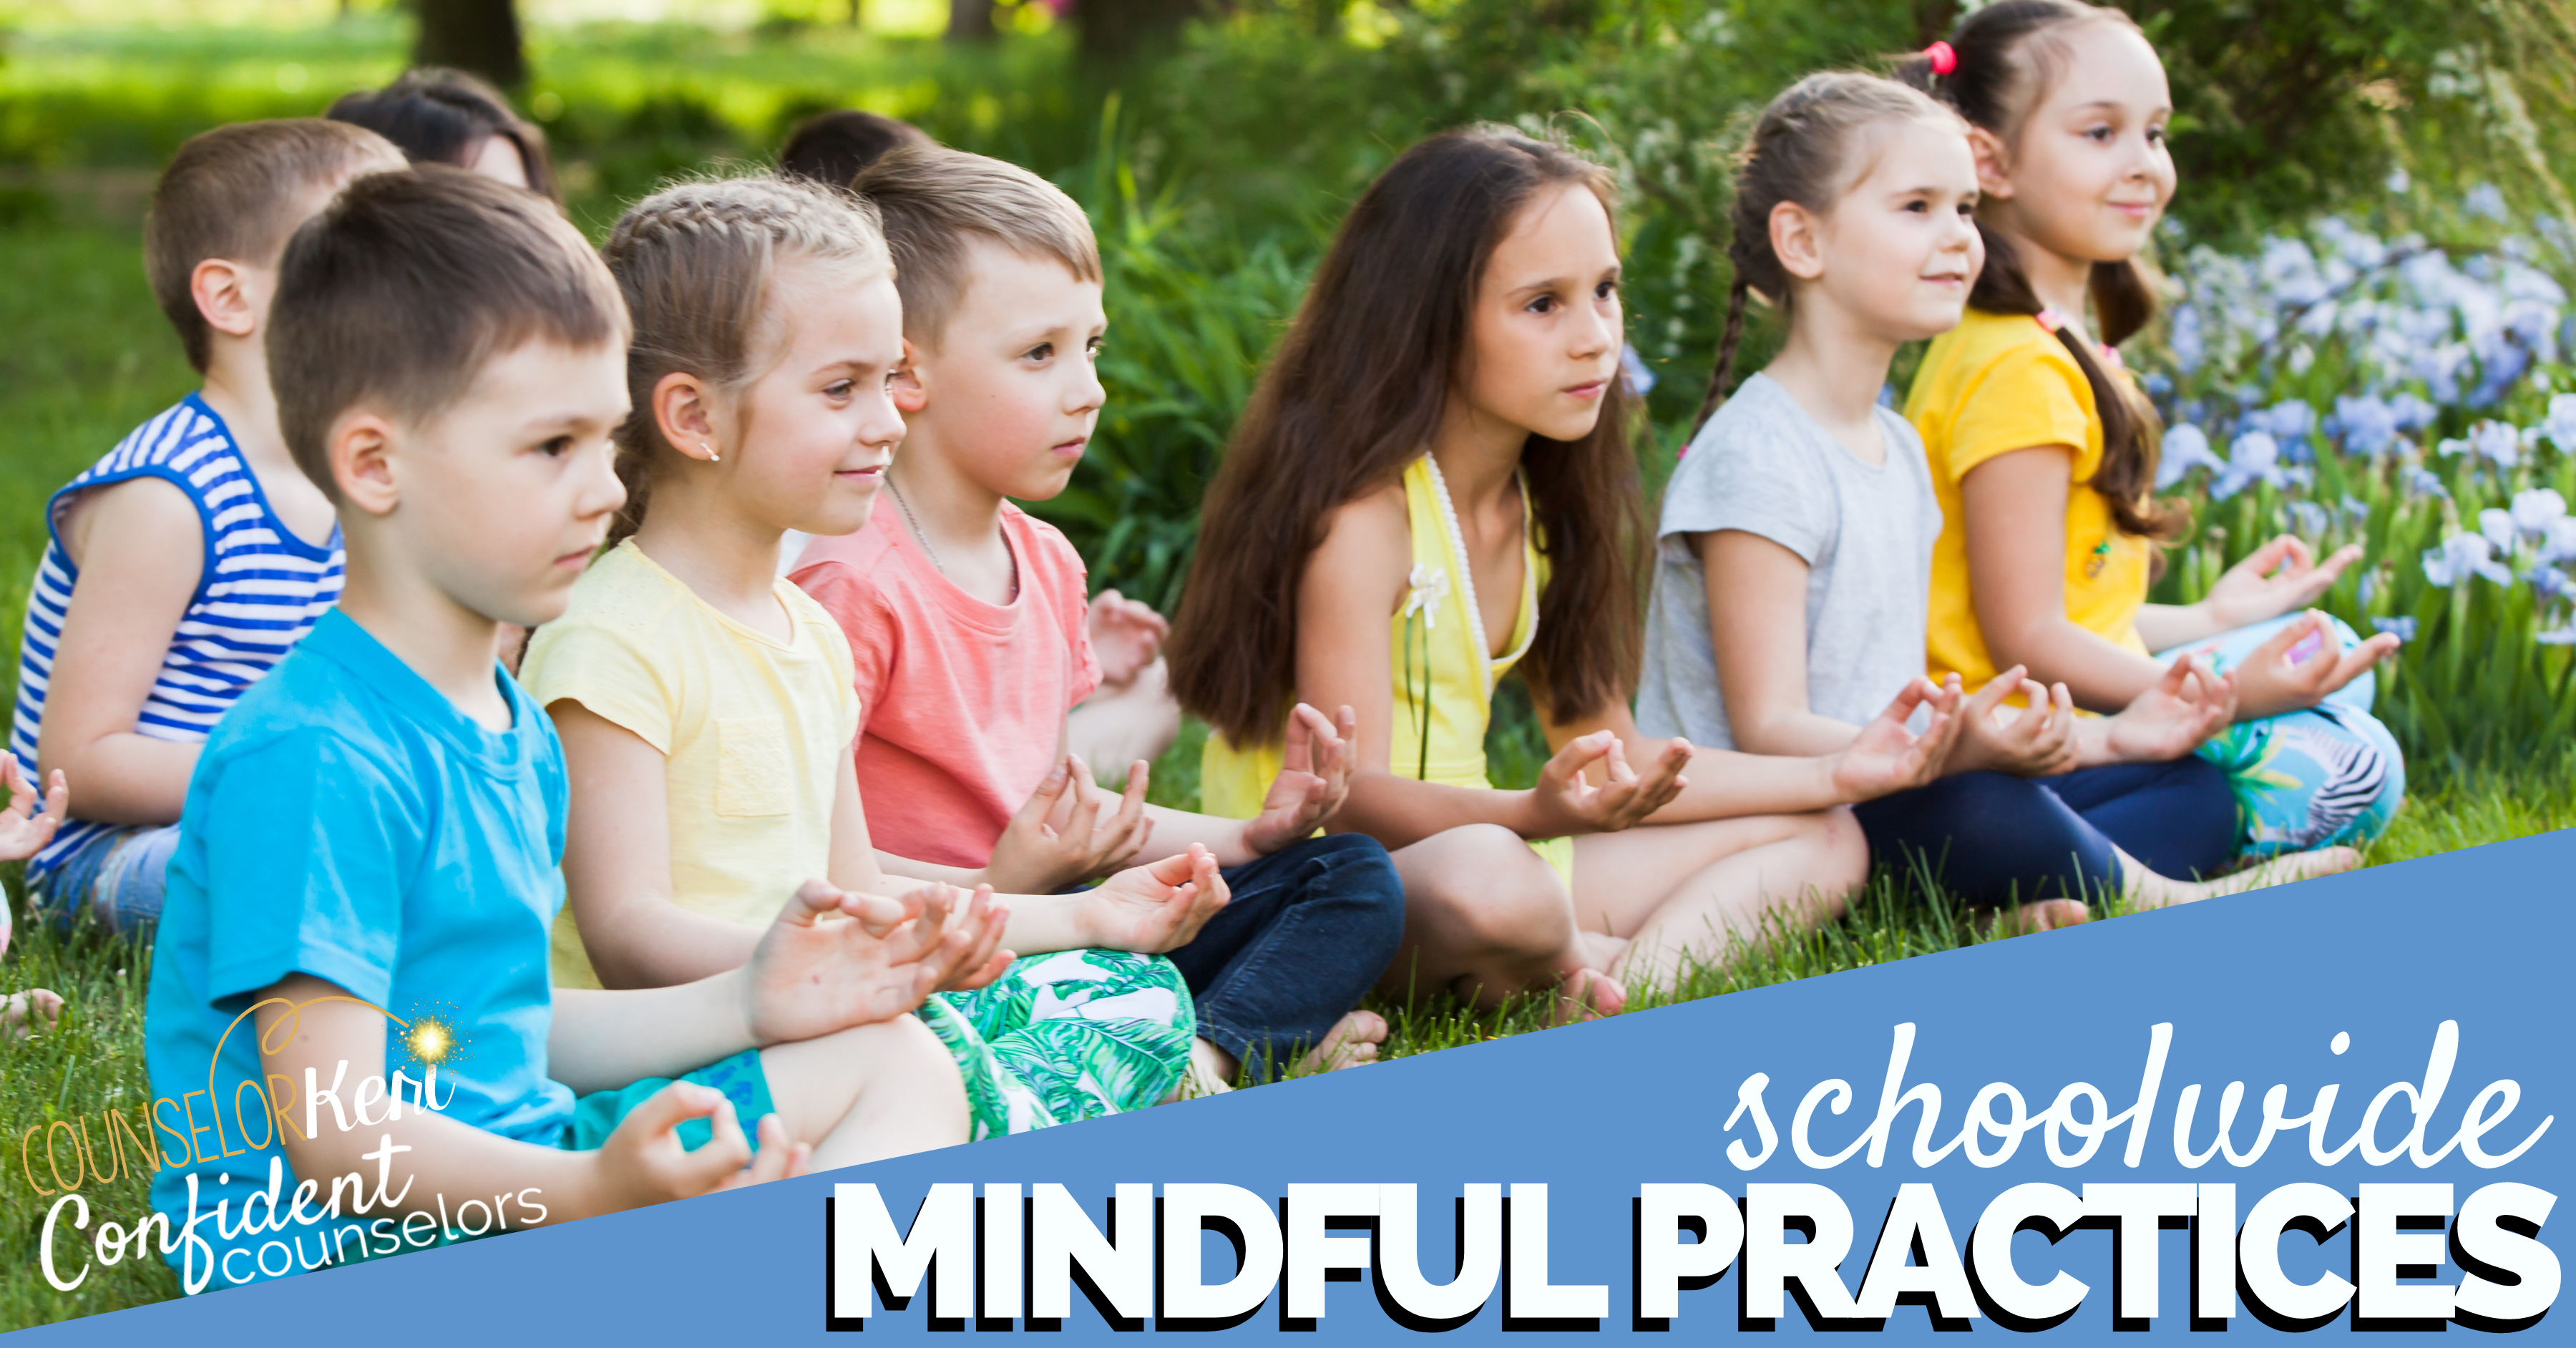 Want to encourage mindful practices throughout your school community? Read more about encouraging schoolwide mindfulness activities & culture!